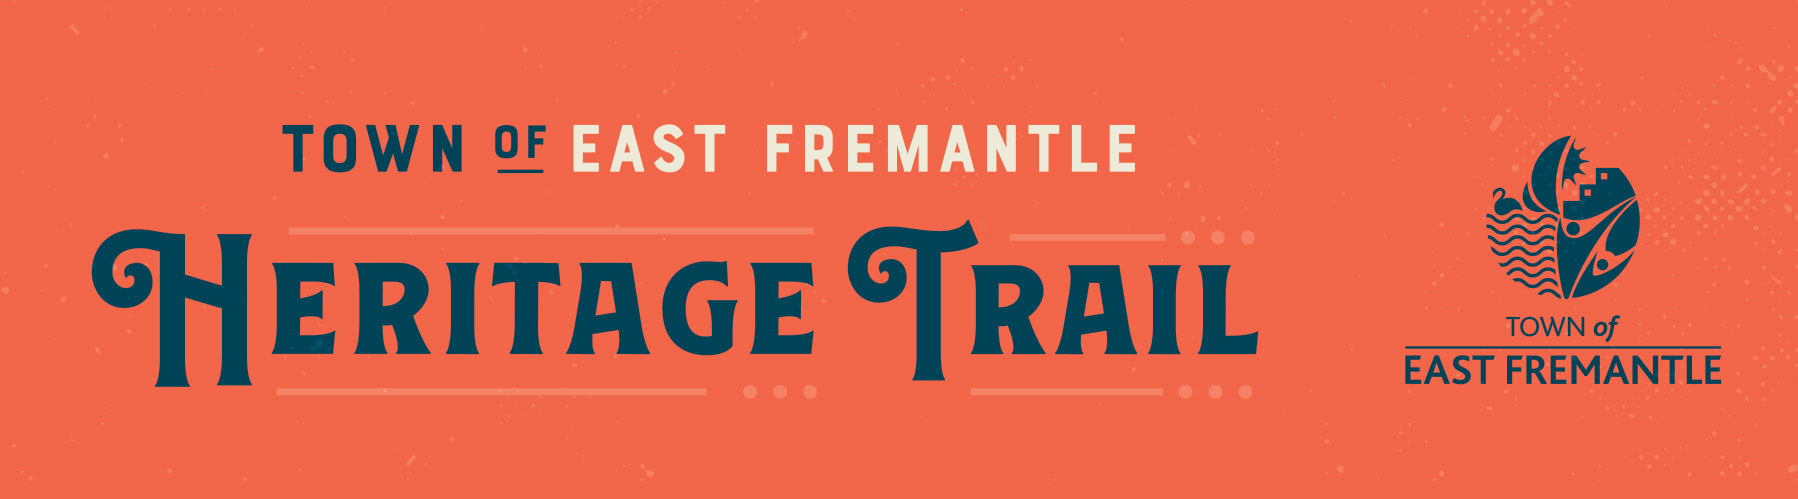 Banner - Town of East Fremantle Heritage Trail » Town of East